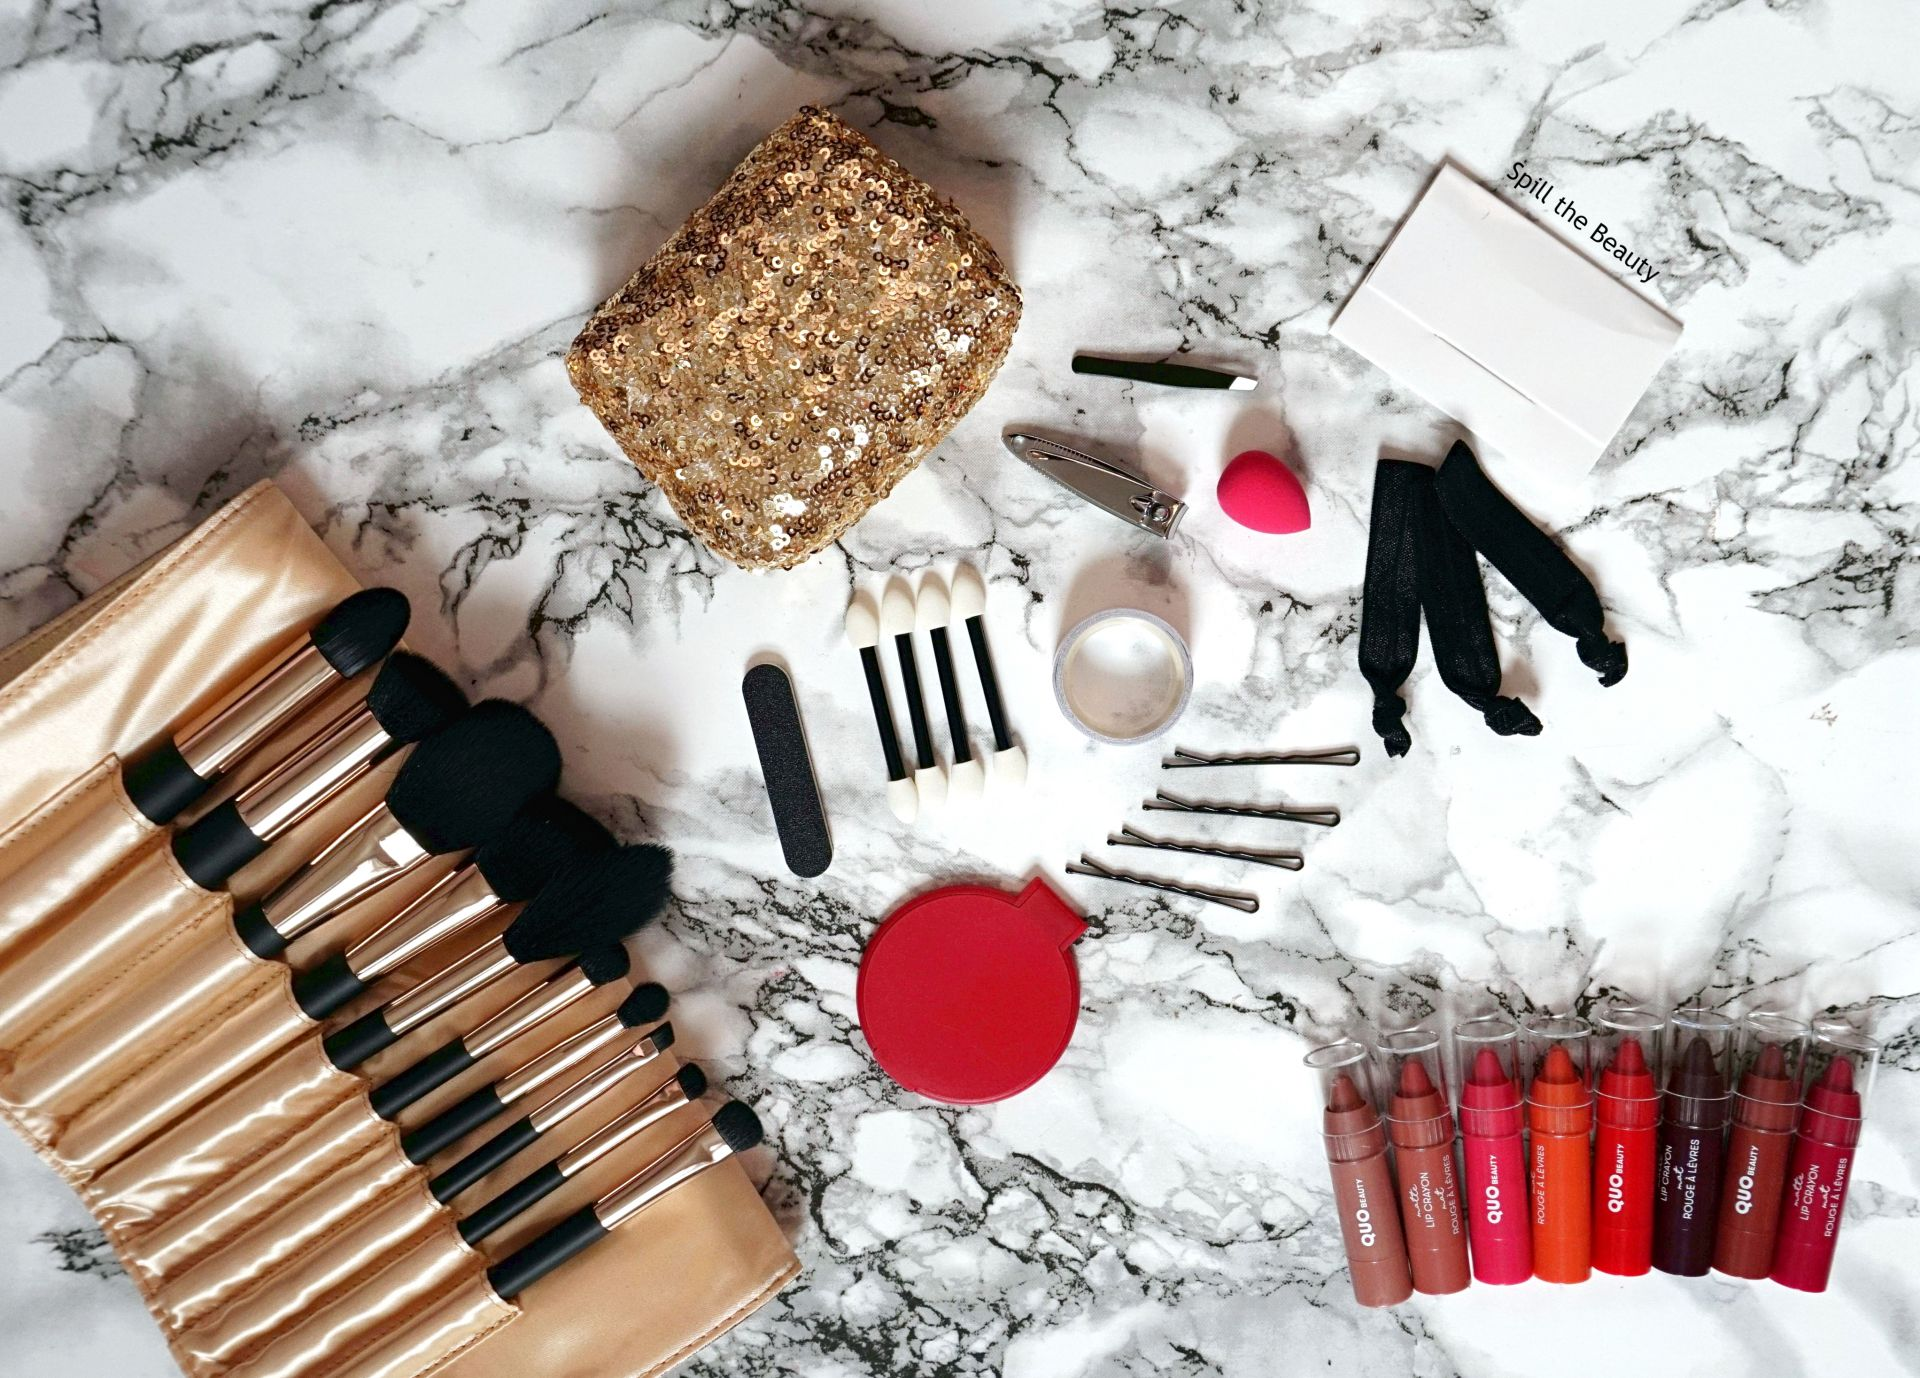 Gift Guide 2019 - Spill the Beauty